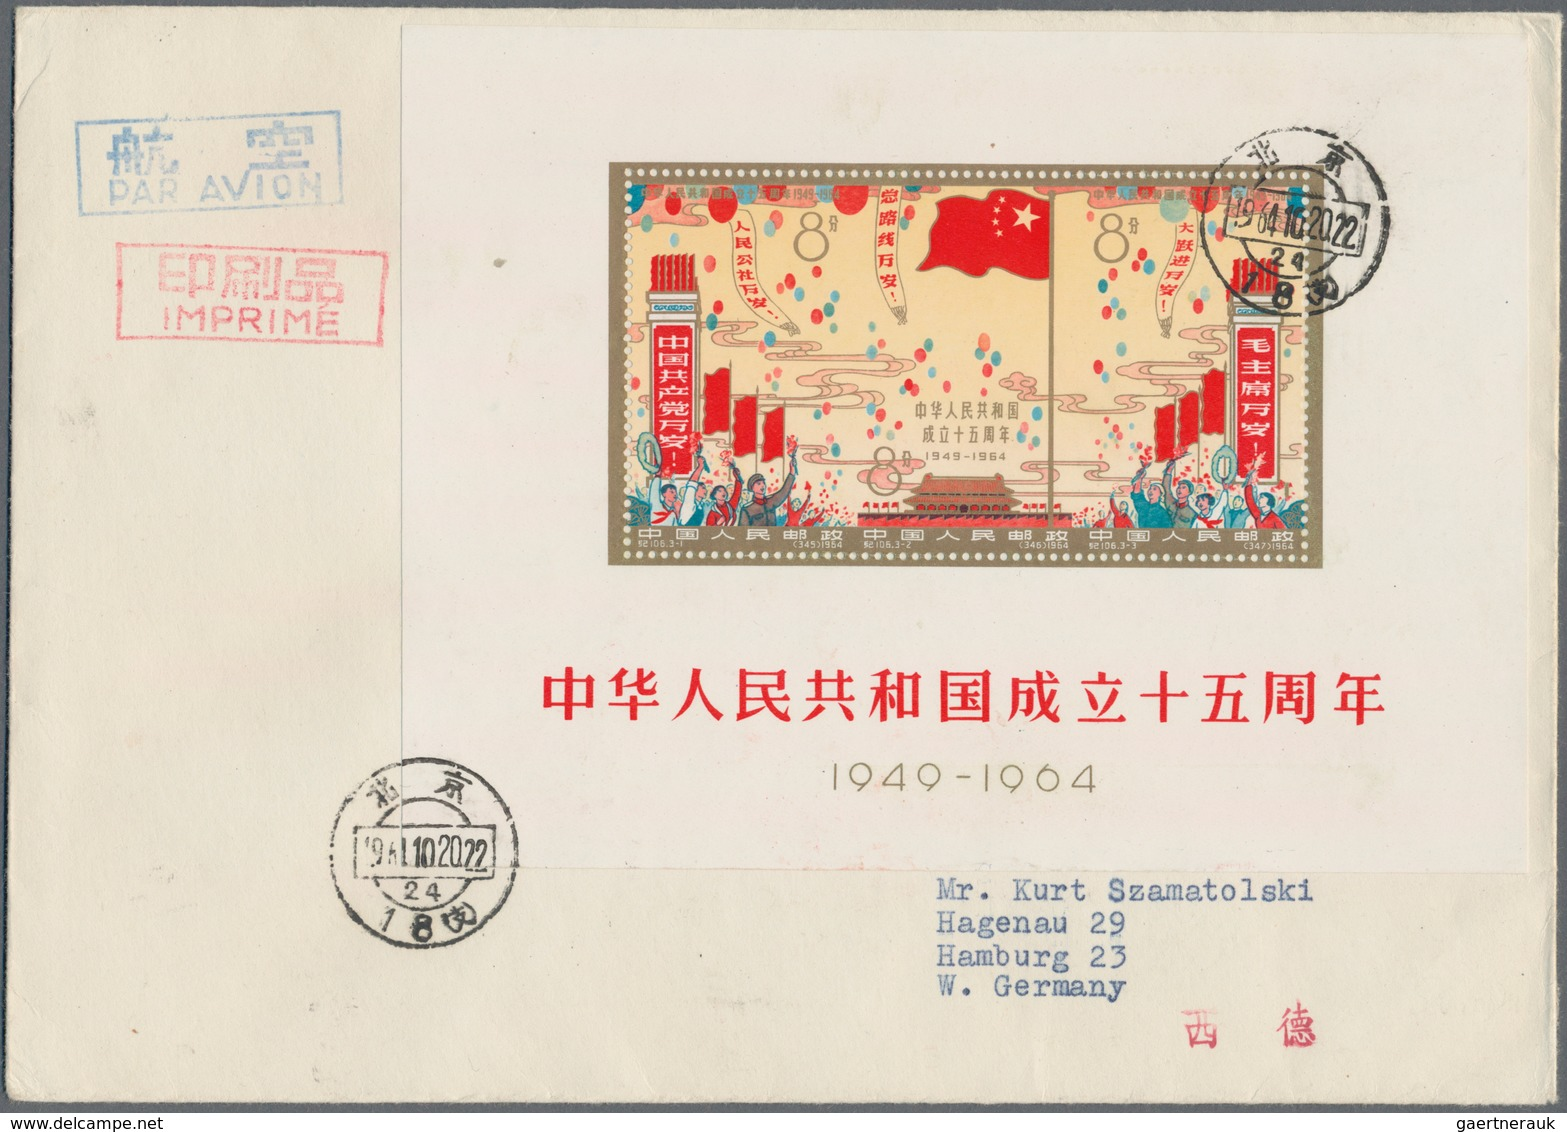 China - Volksrepublik: 1964, FDC Addressed To Hamburg, West Germany Bearing The 15th Anniv Of The Pe - Zonder Classificatie